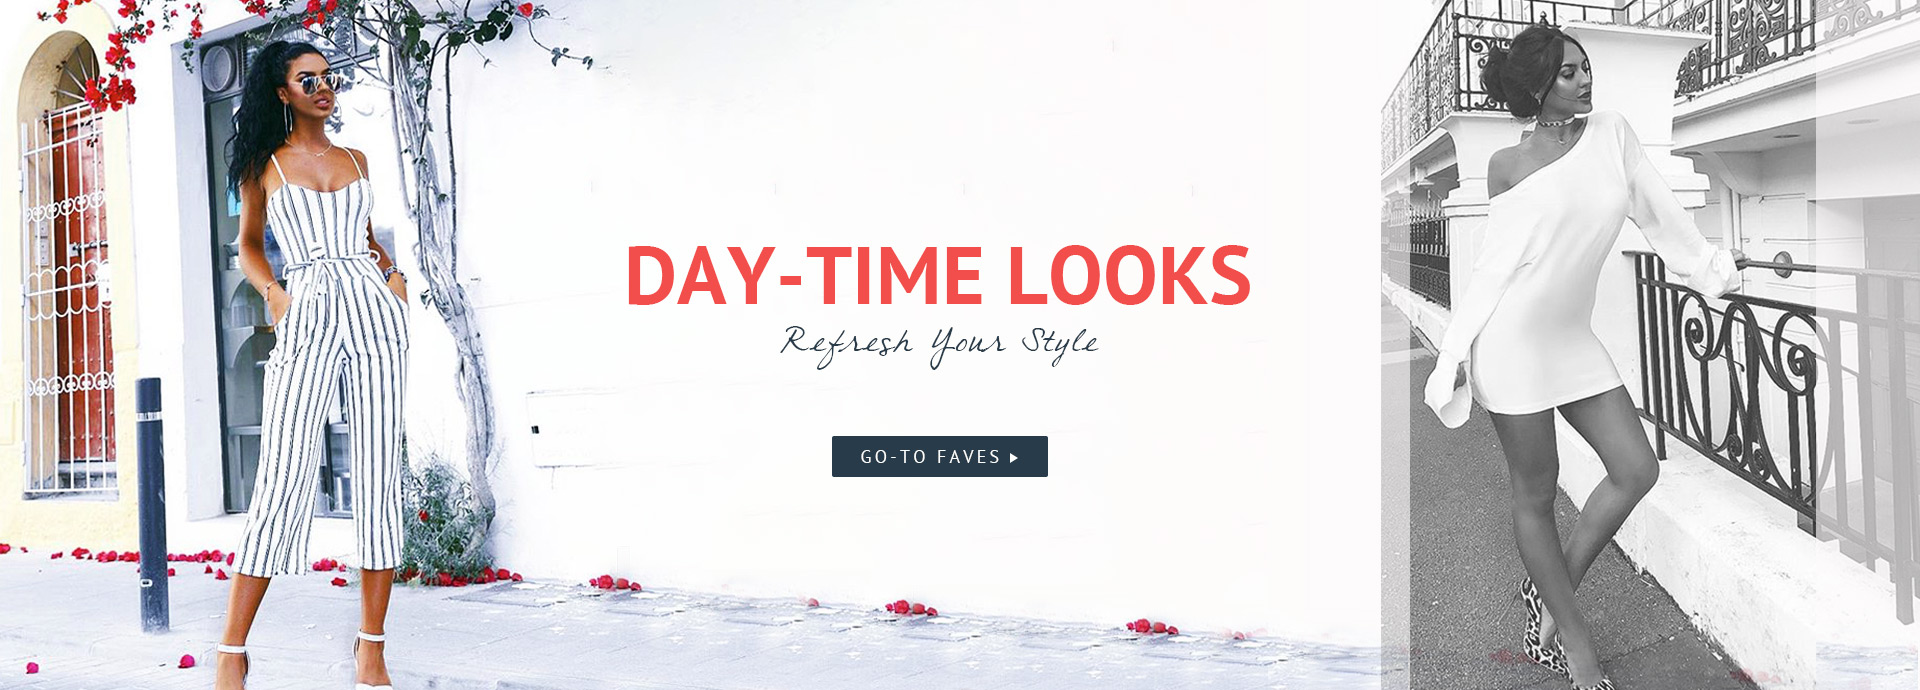 Day-time Looks